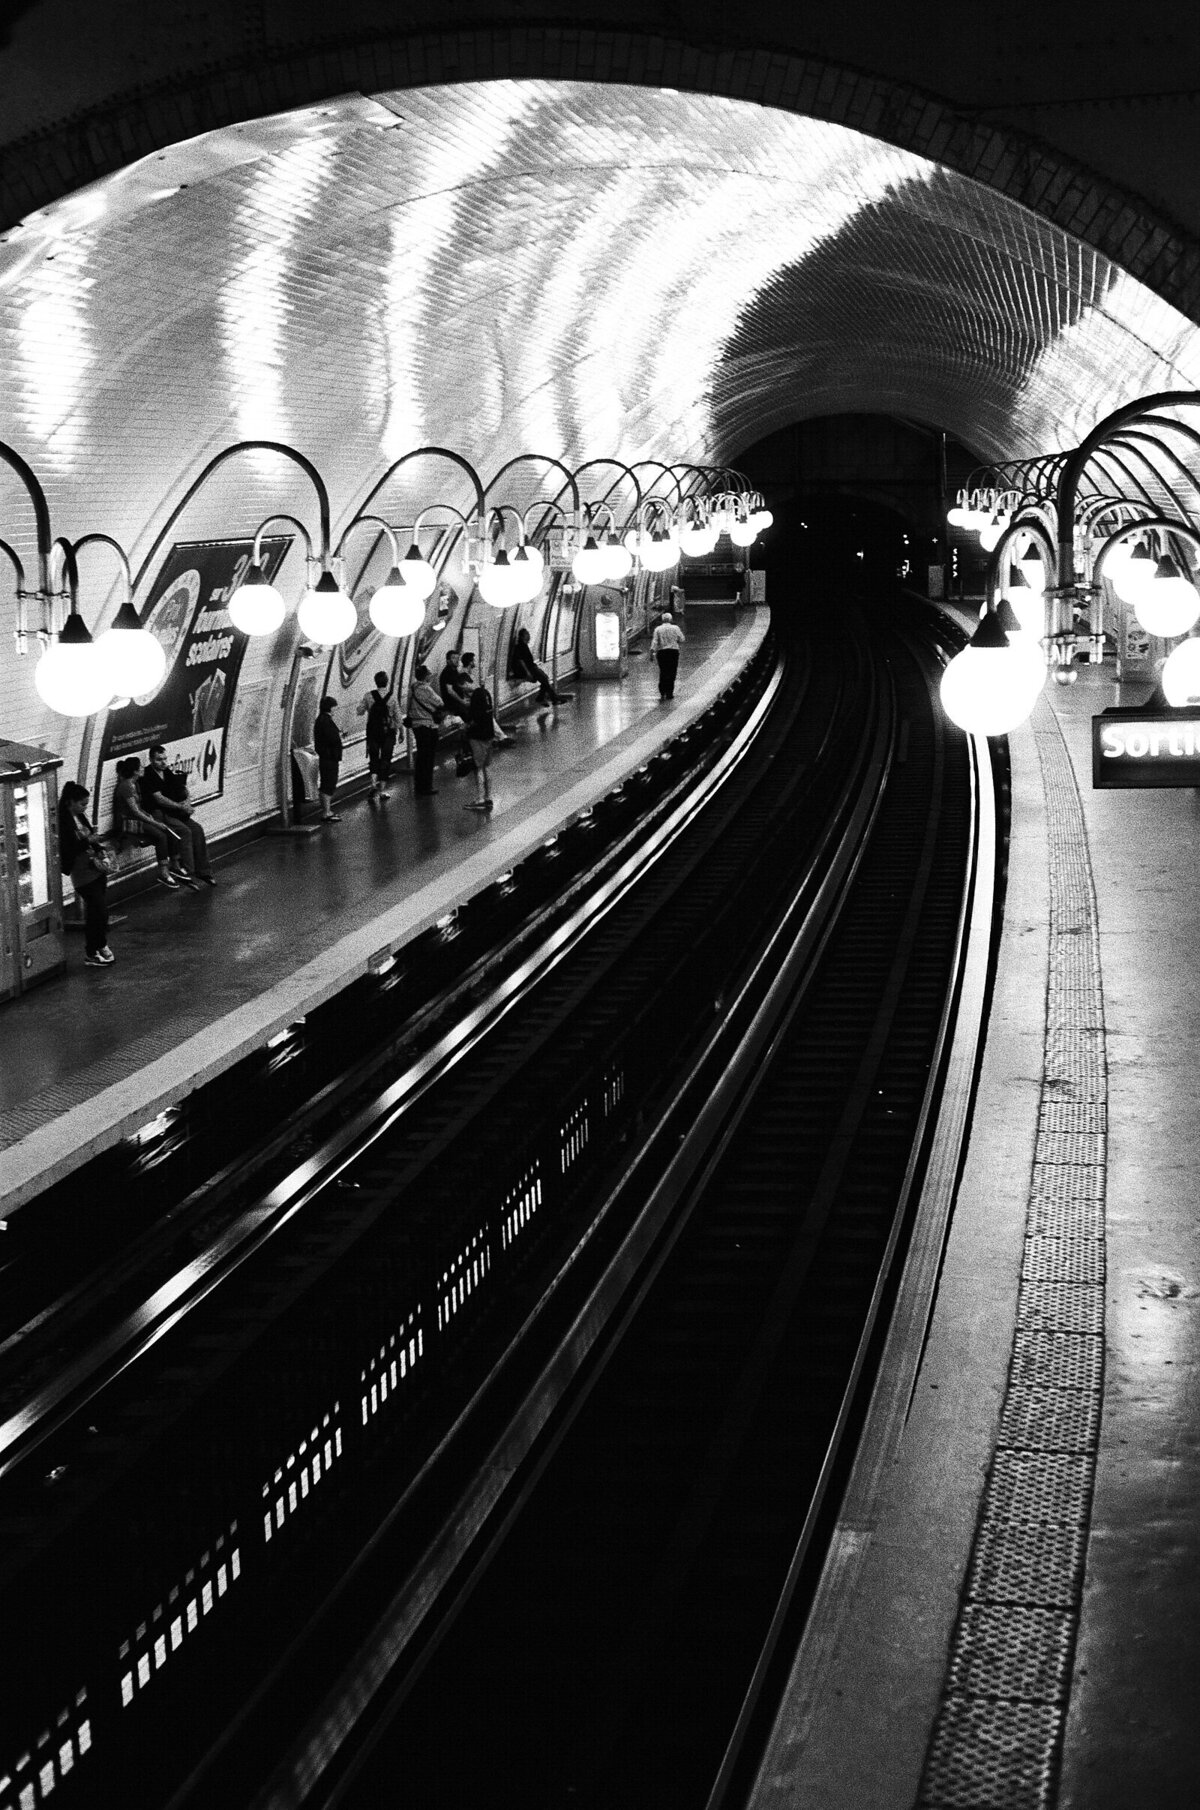 Paris subway photo